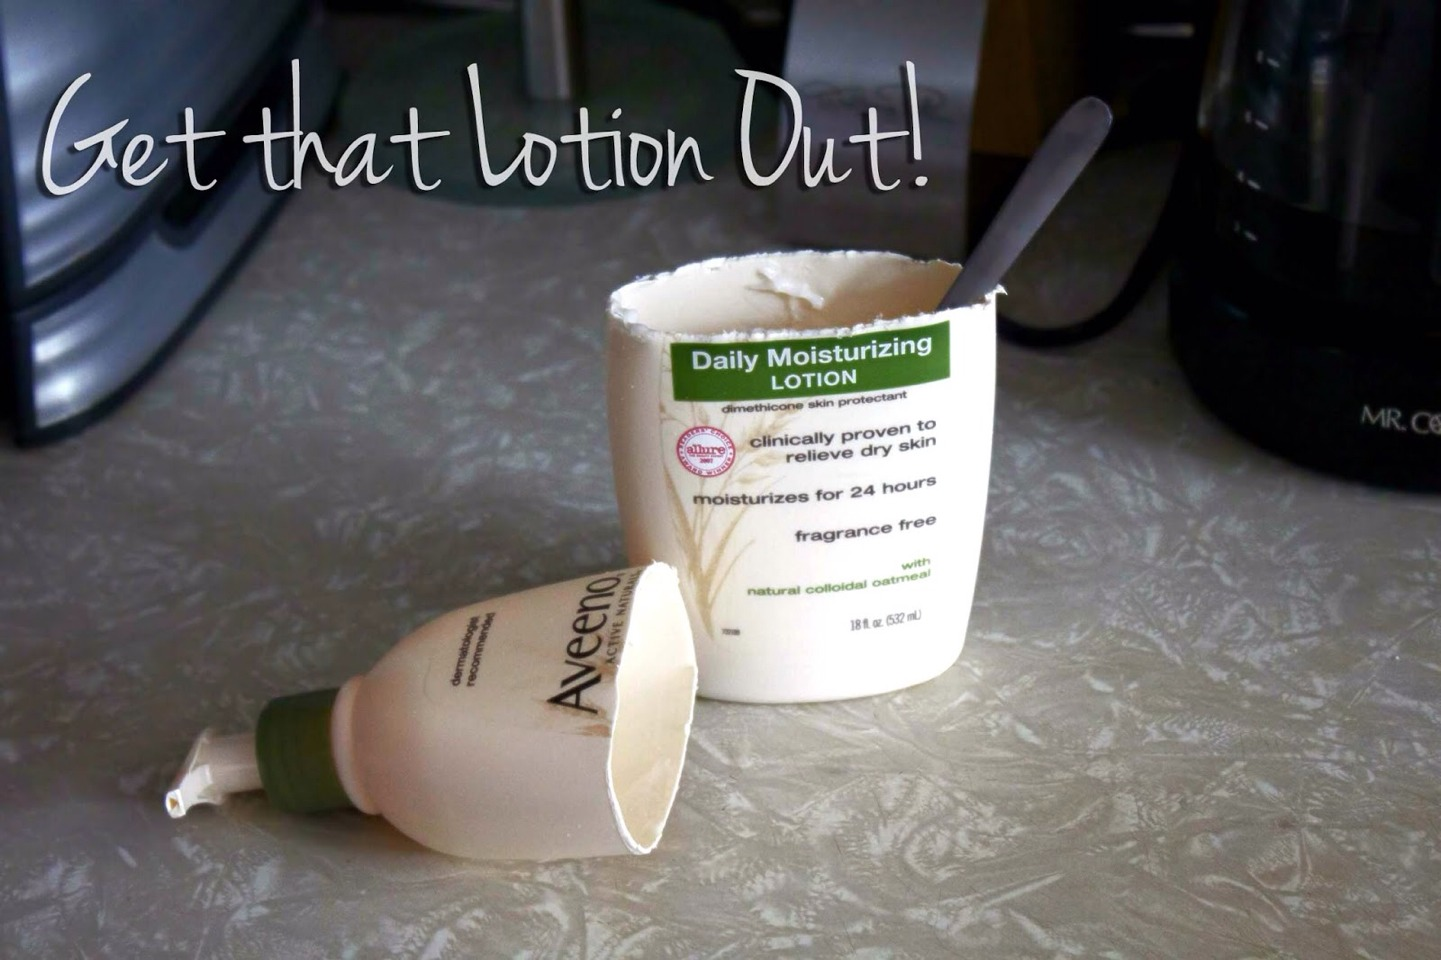 Cut it In half and take that lotion out